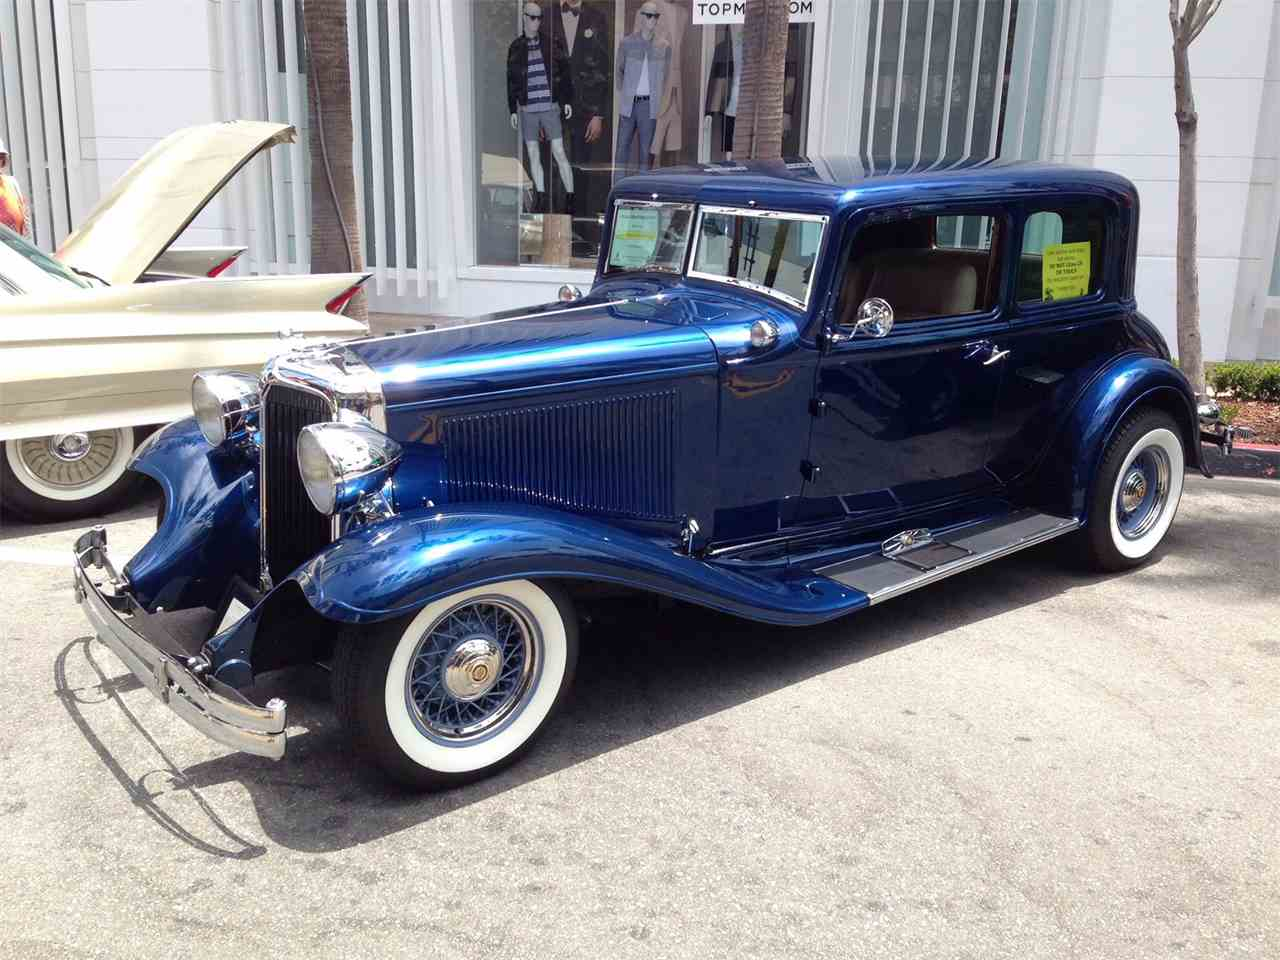 Classic Cars For Sale California Usa: 1932 Chrysler Coupe For Sale